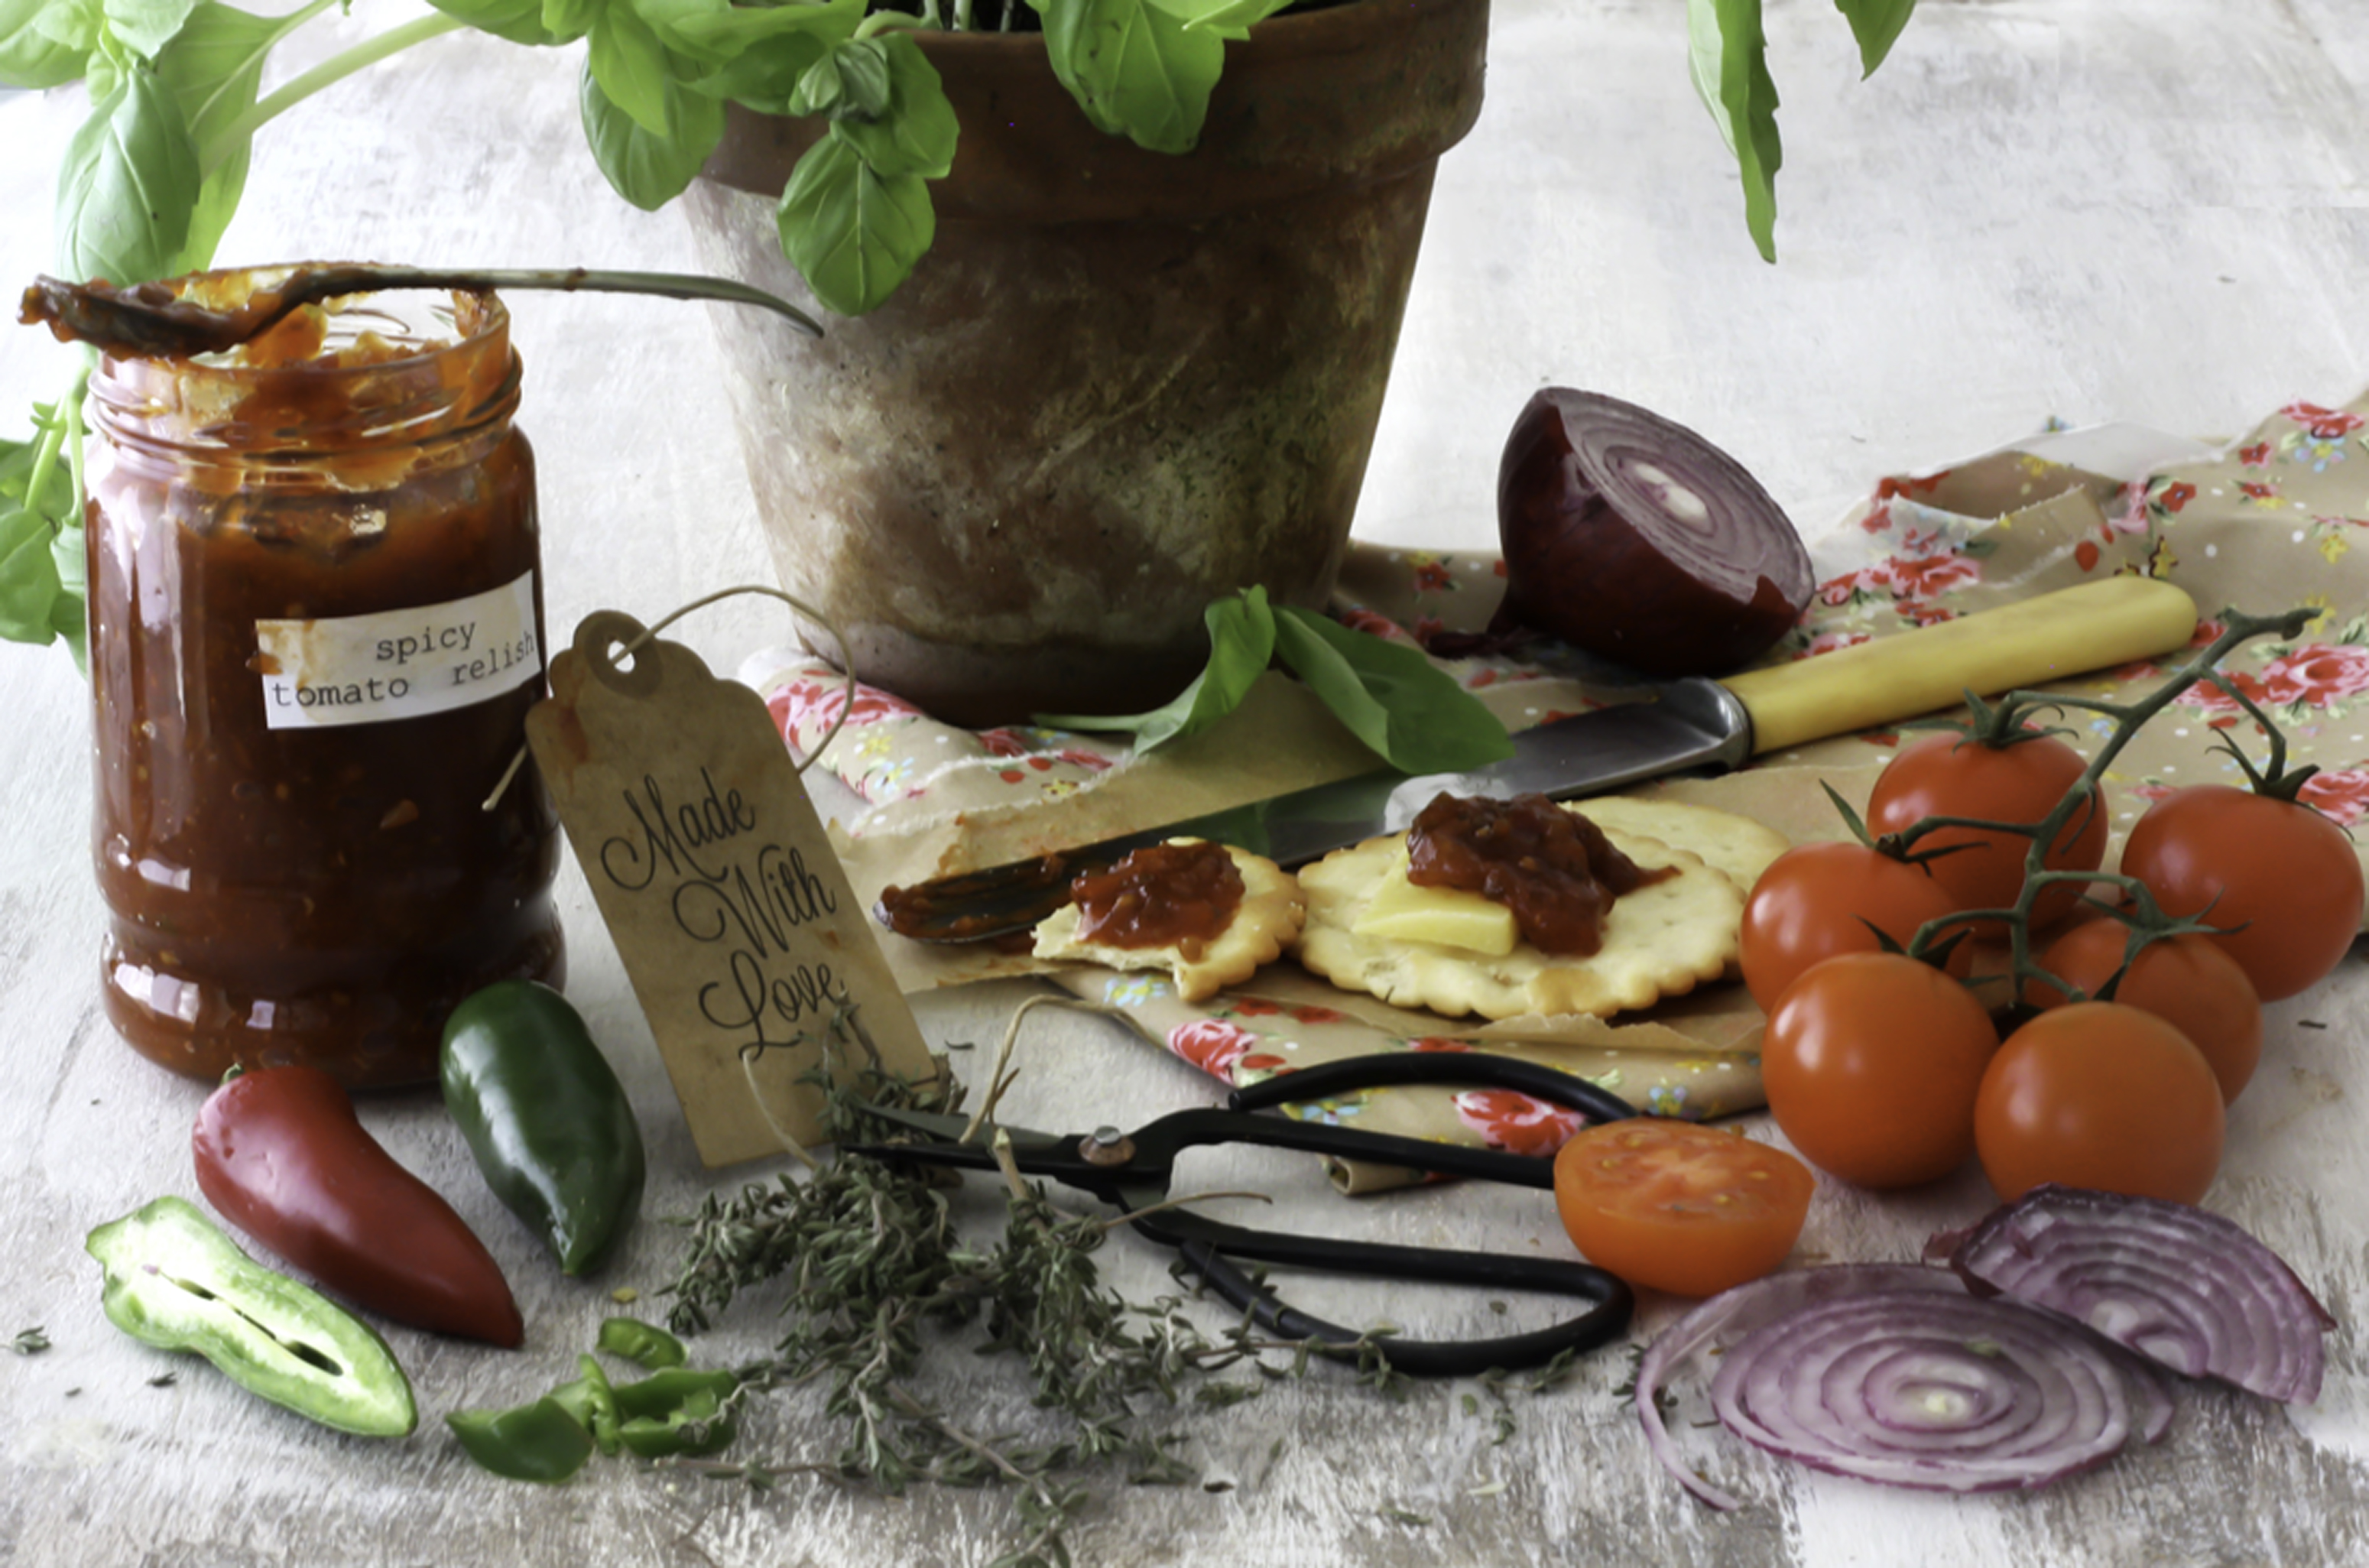 Ingredients- Spicy Tomatoe Relish by Rossana Novella